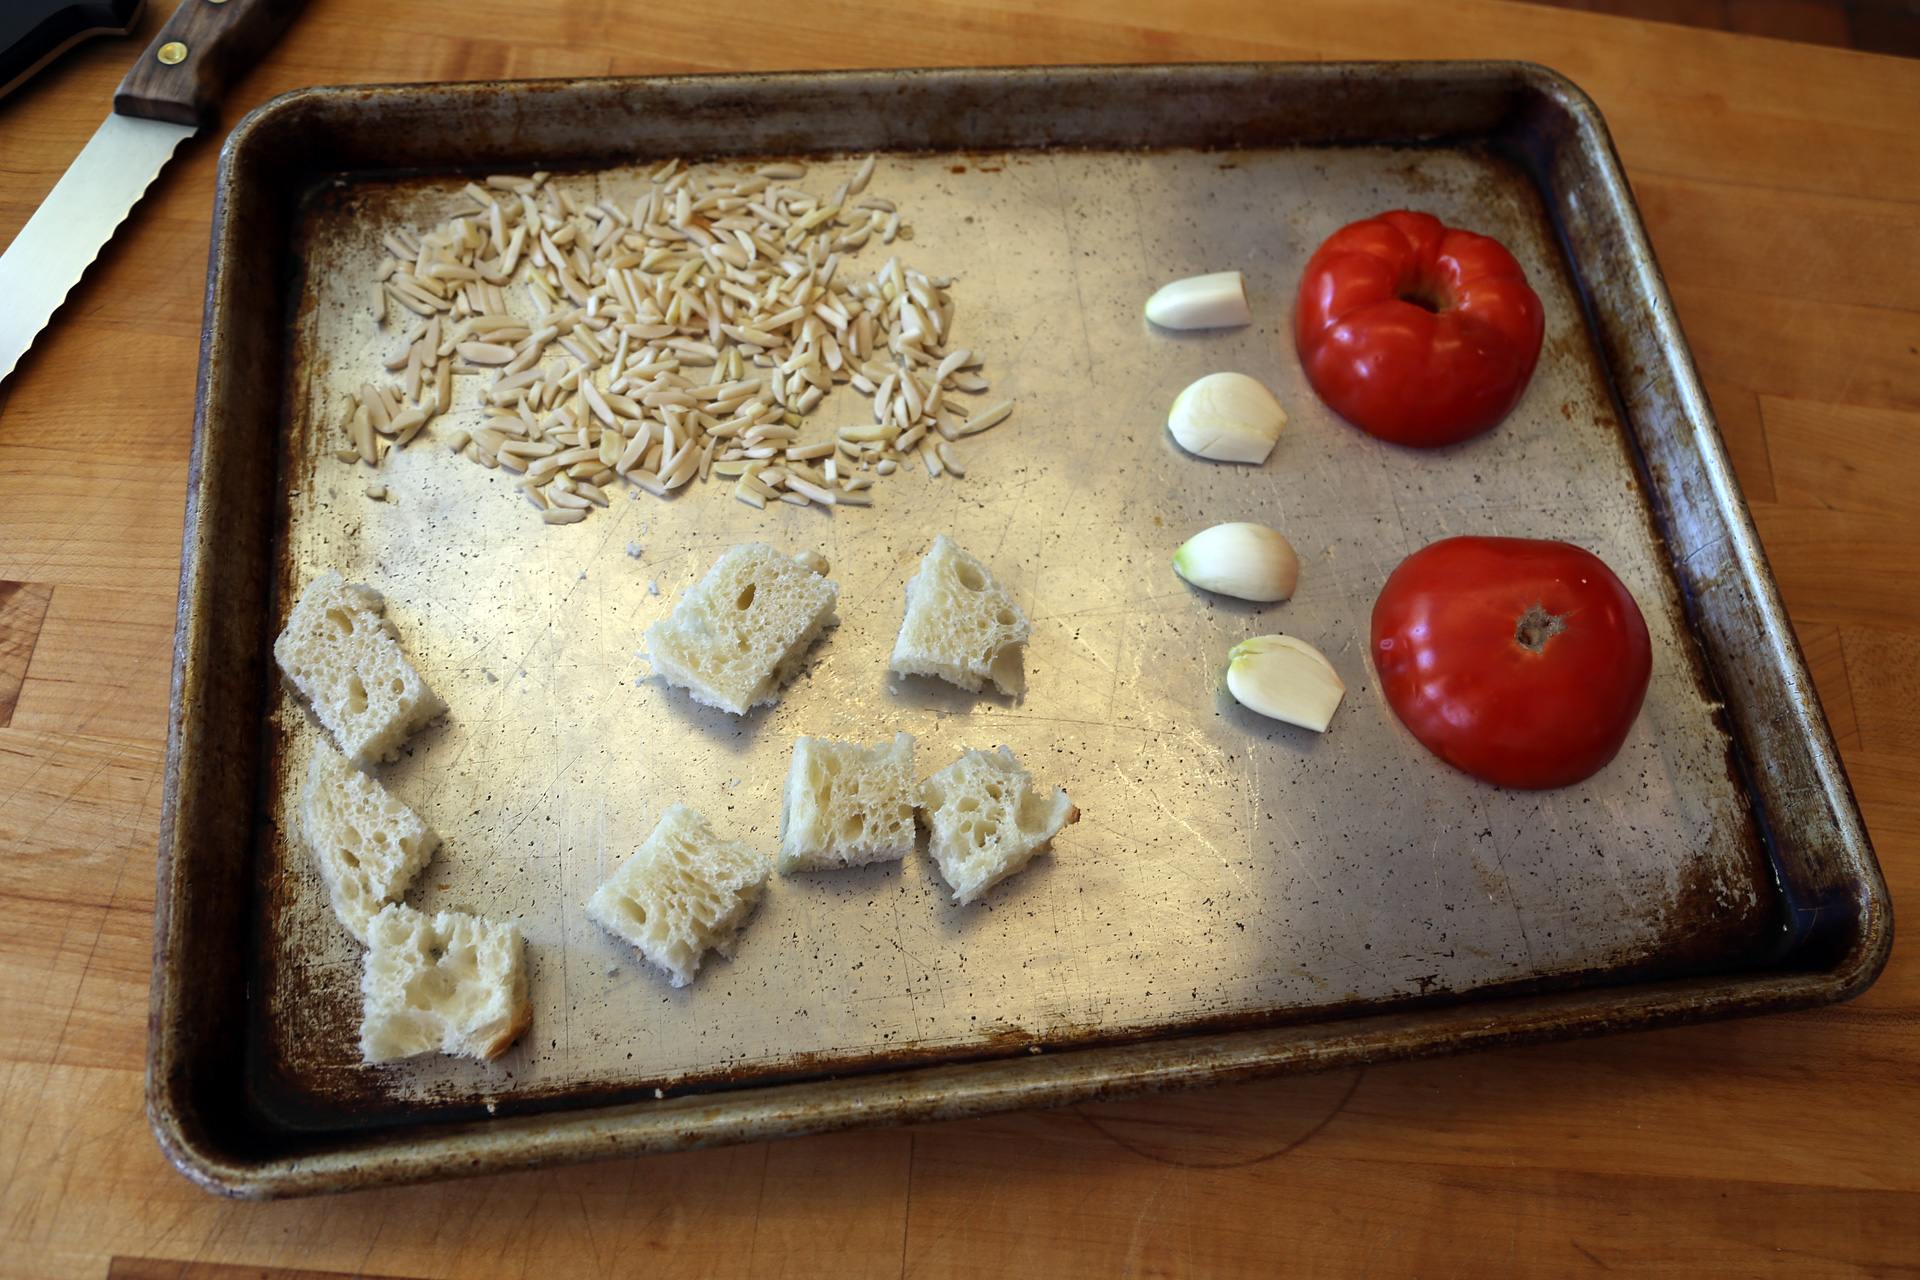 Place the tomato, cut side down on one side of a rimmed baking sheet and arrange the garlic next to it. On the other side, add the bread and almonds.